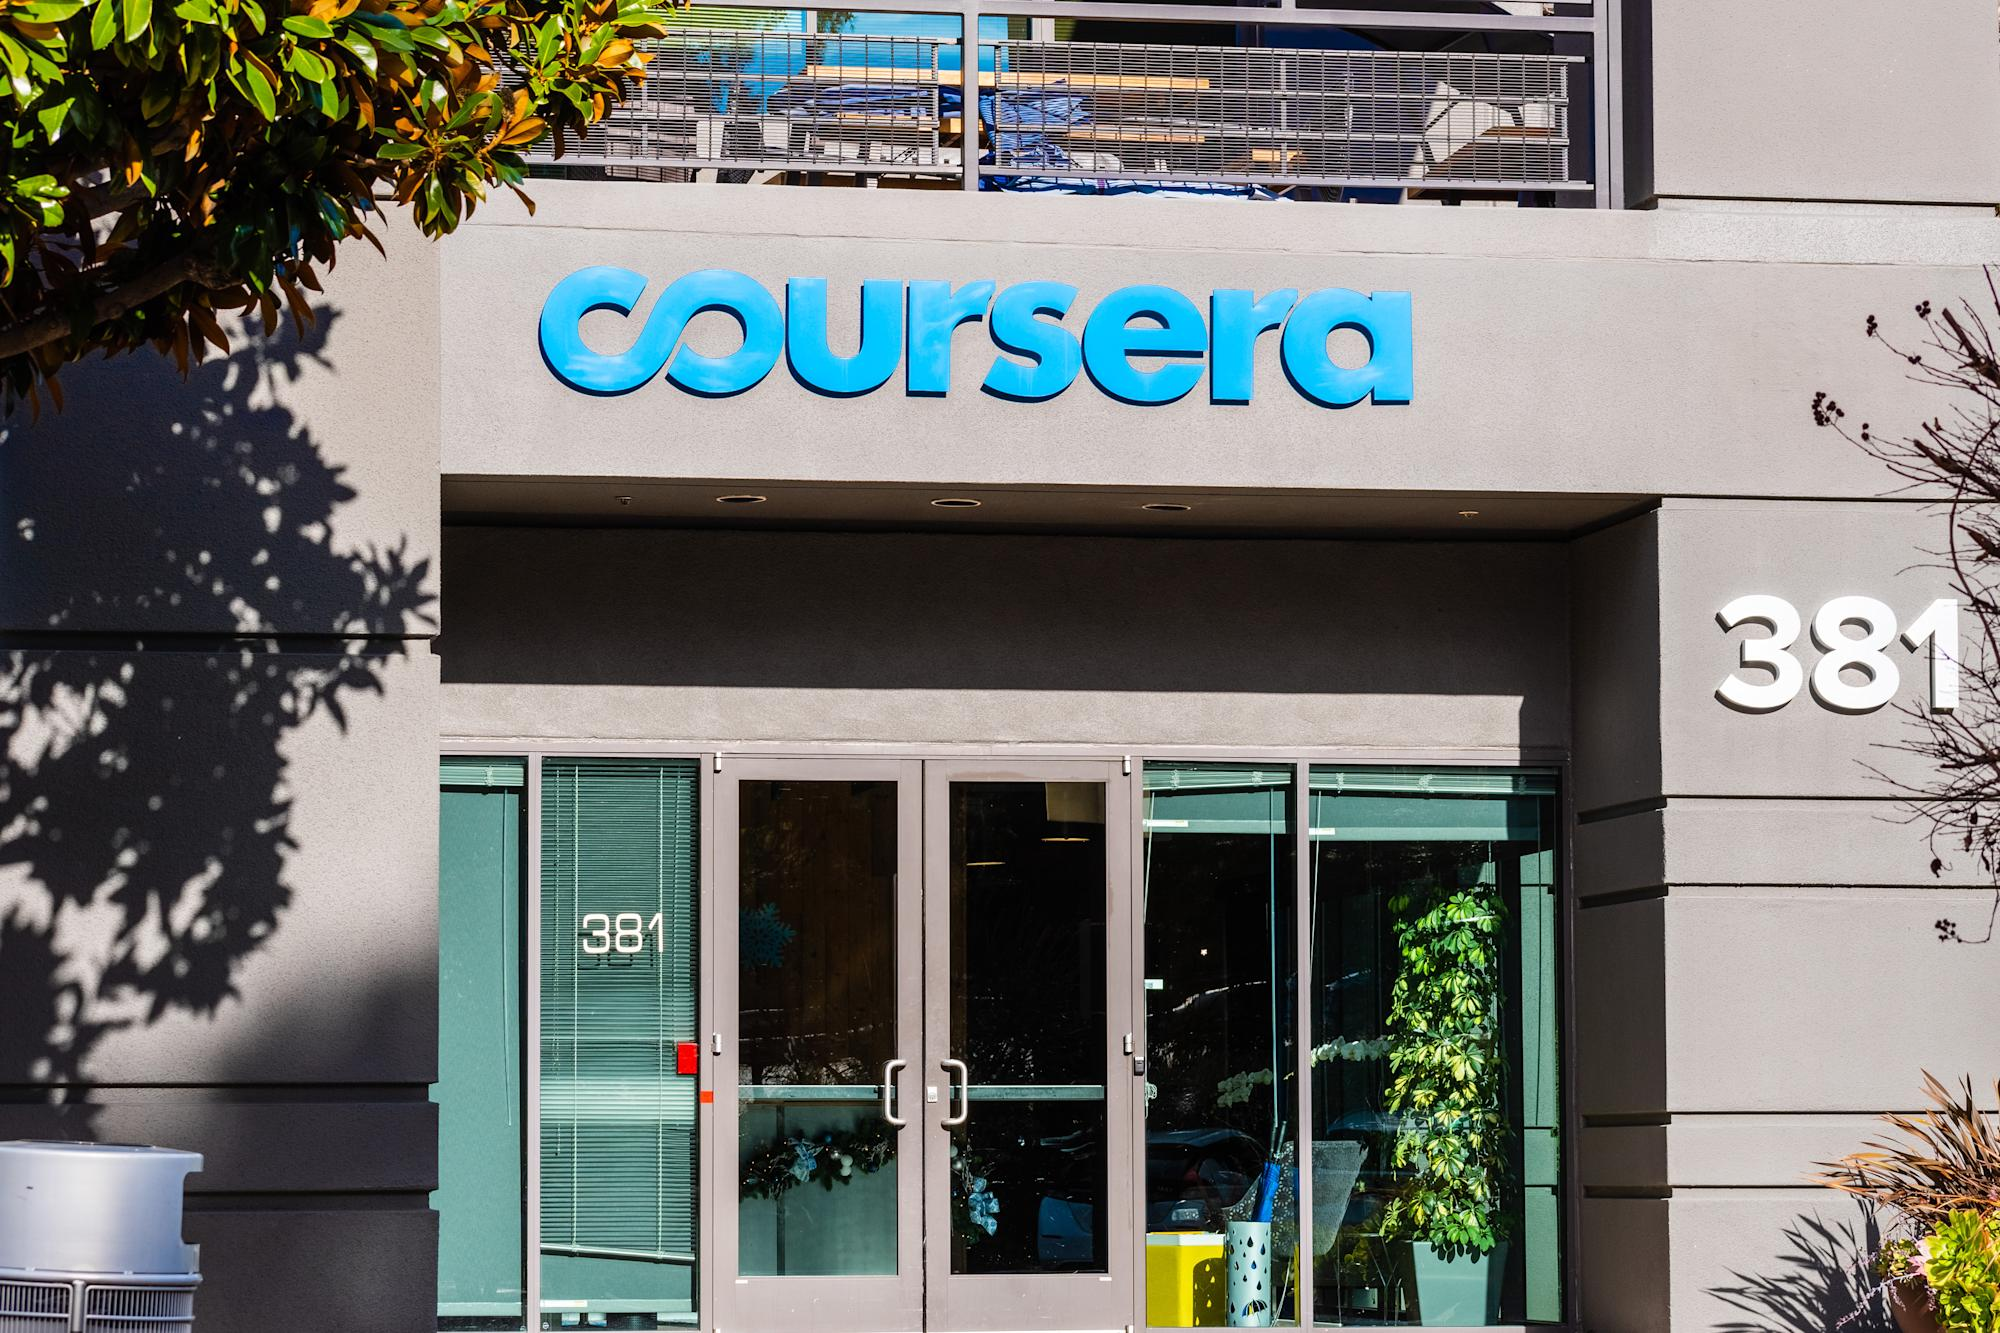 'The world will never be the same:' Coursera CEO on learning post pandemic